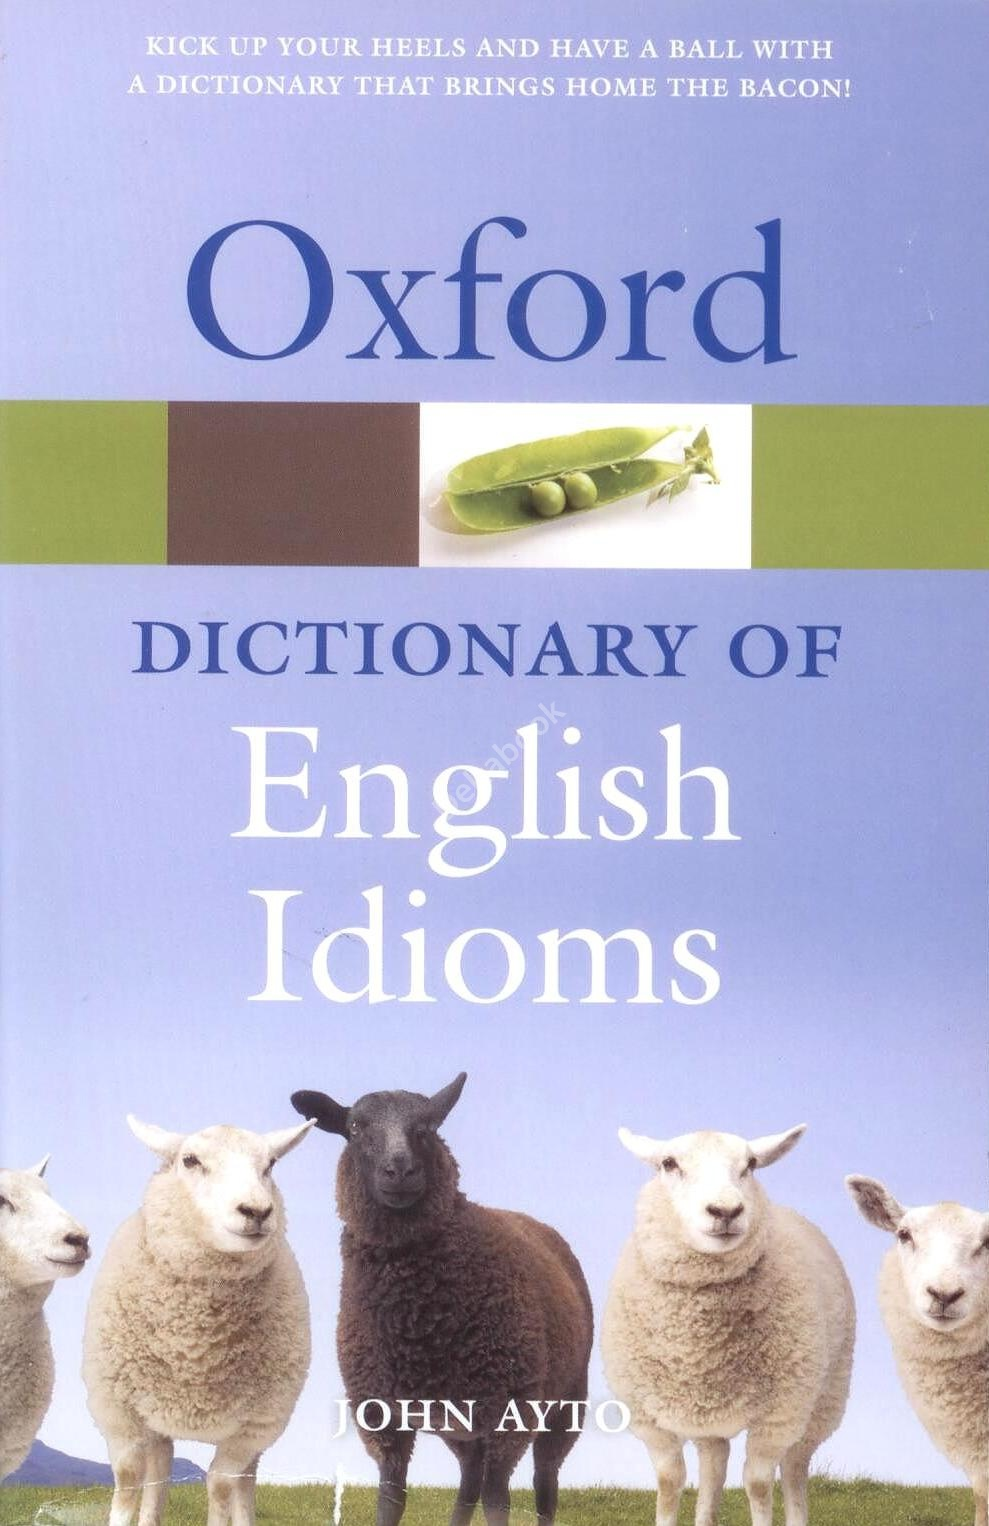 Oxford Dictionary of English Idioms (3rd Edition)